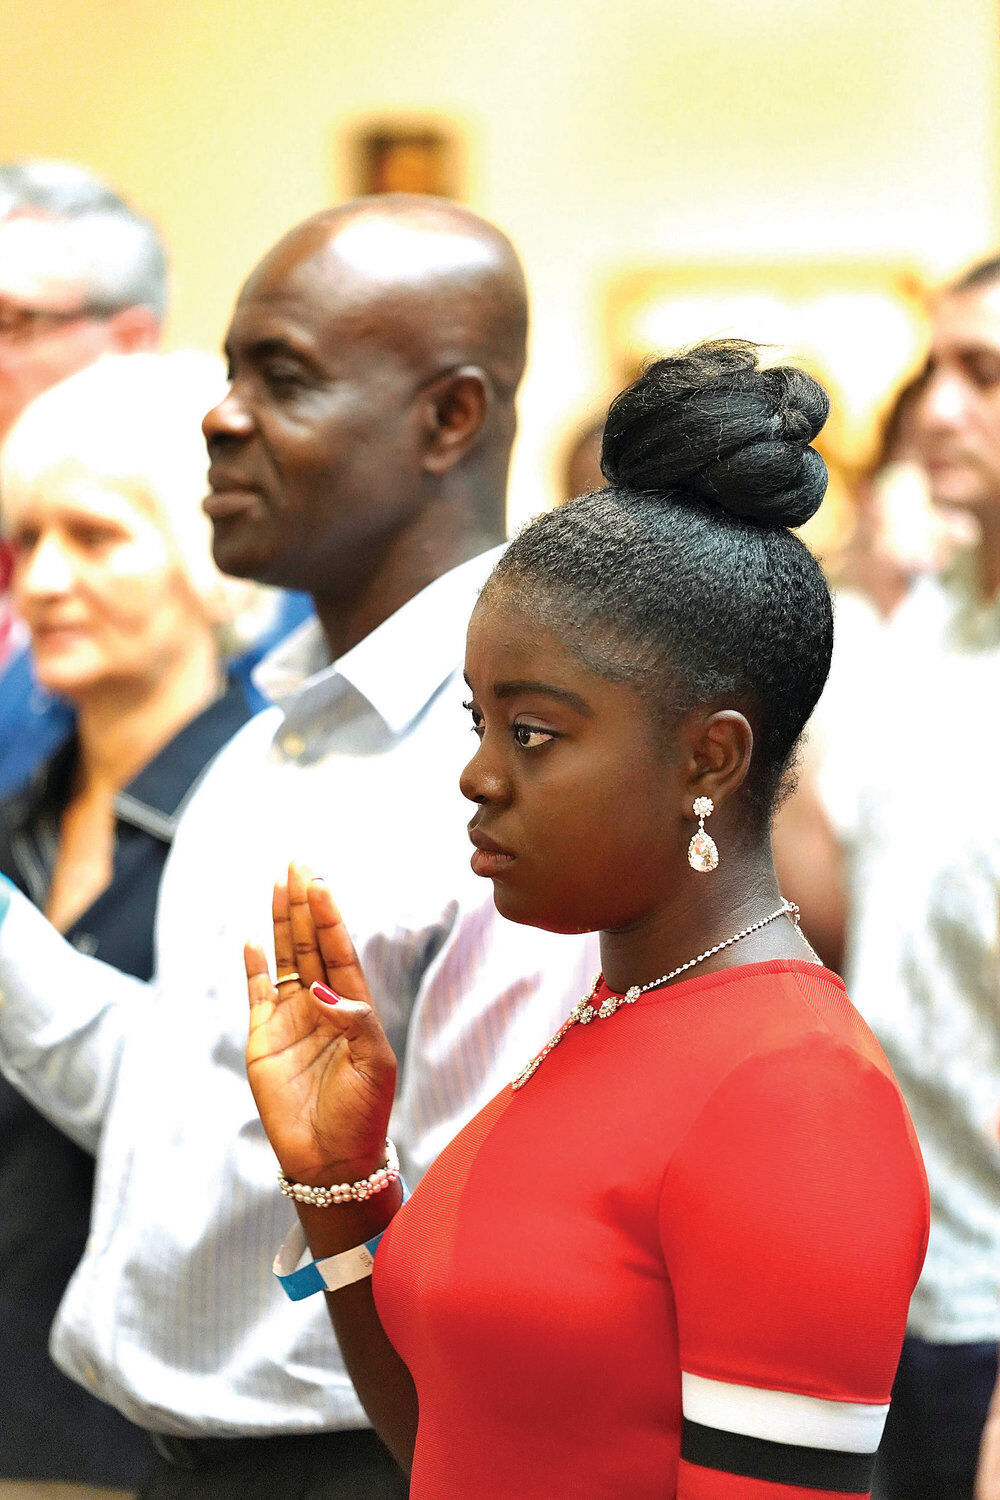 Sentiment at naturalization ceremony in Stockbridge: 'This is my country now'